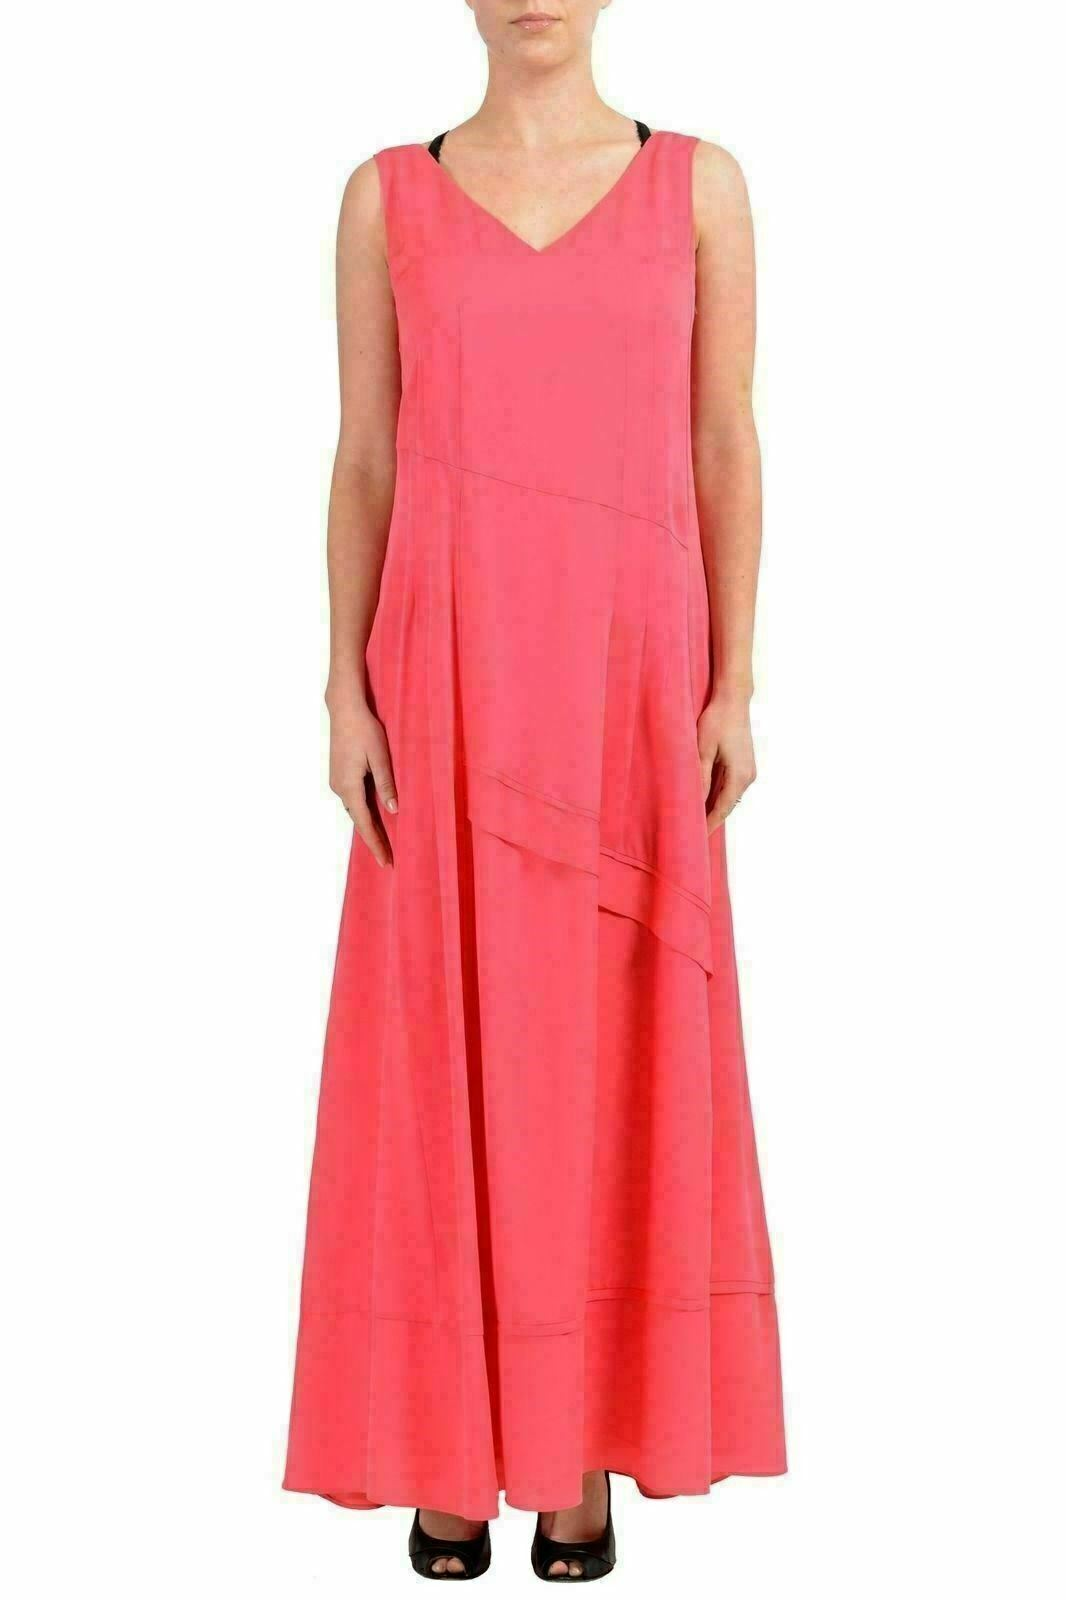 Hugo Boss  Daomara1  Woherren Silk Rosa Sleeveless Maxi Dress US 4 IT 40